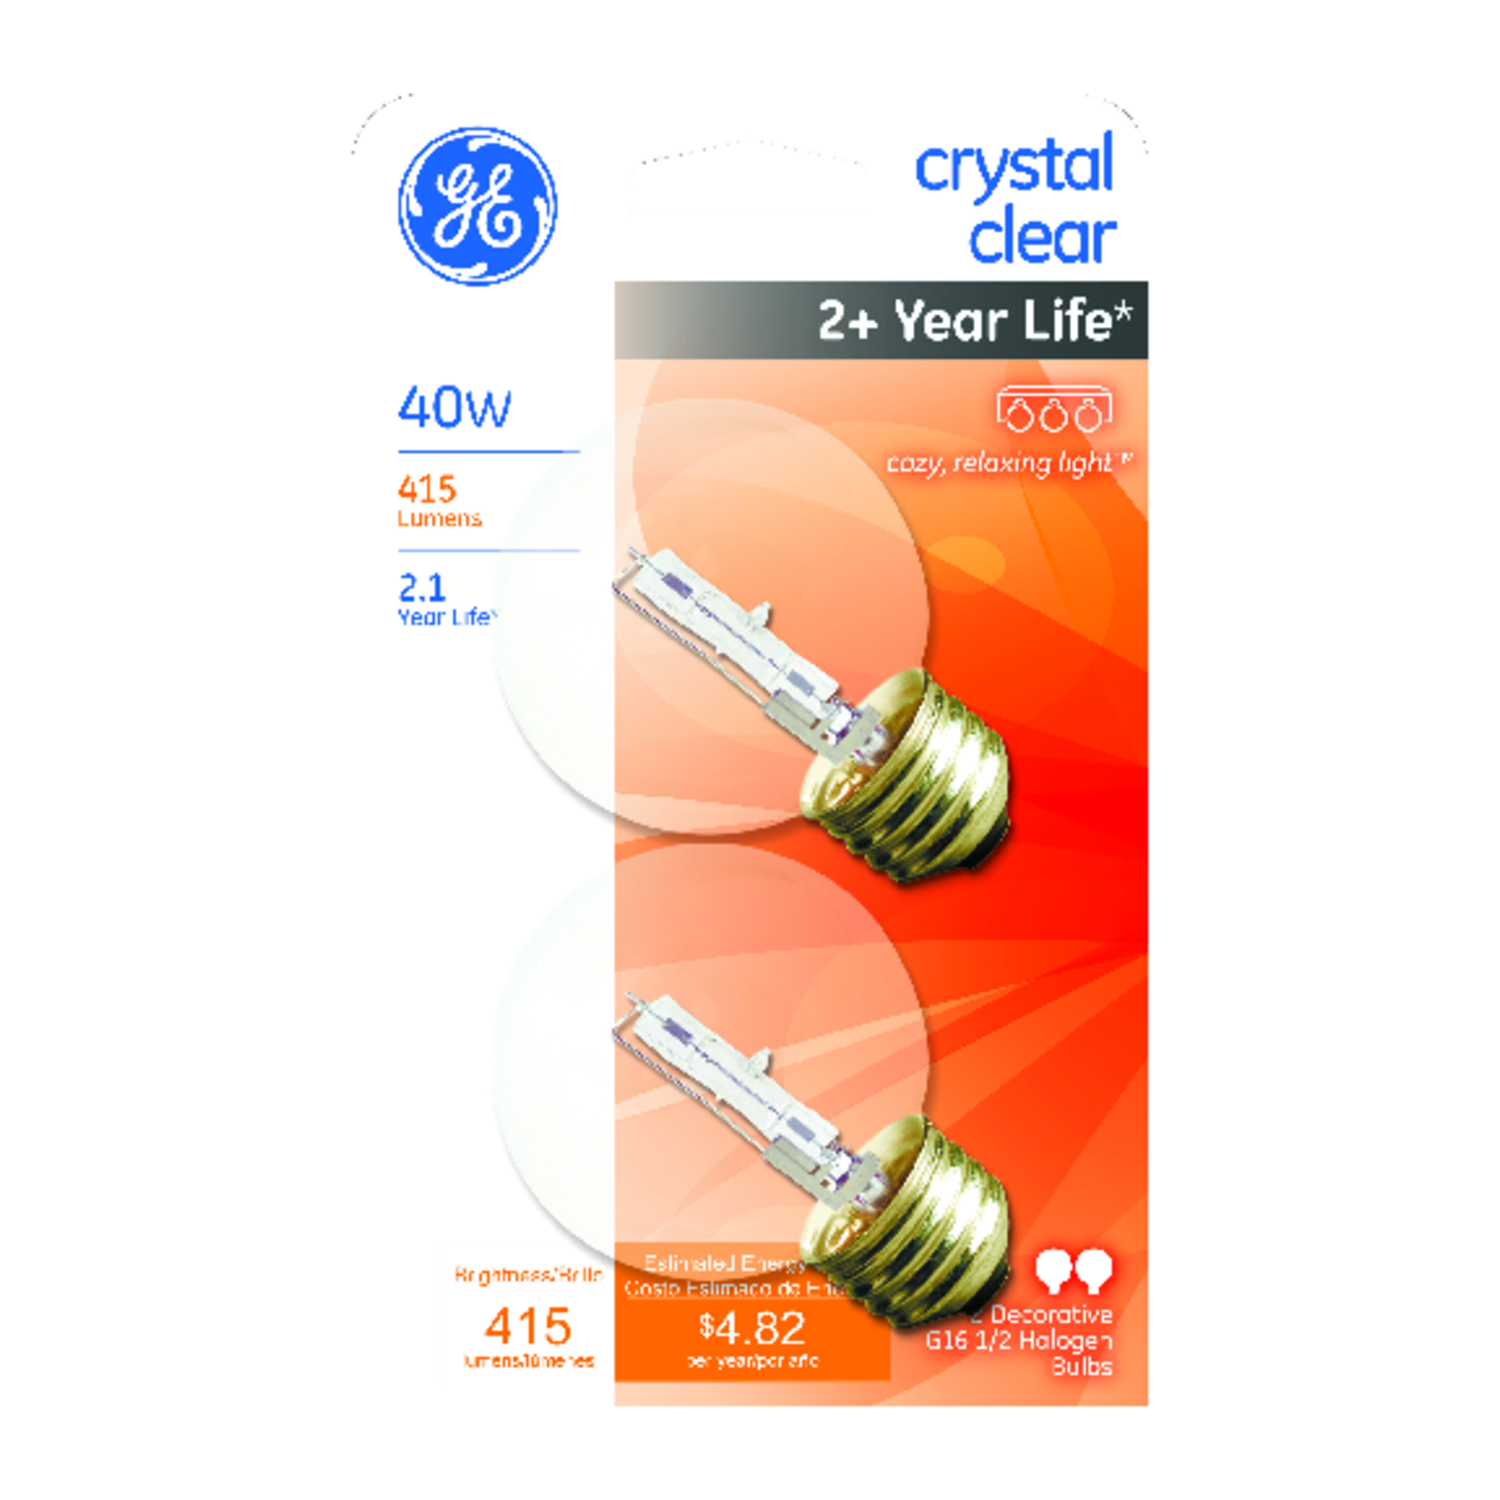 GE Lighting  Edison  40 watts A19  Halogen Bulb  415 lumens Warm White  2 pk Medium Base (E26)  Glob